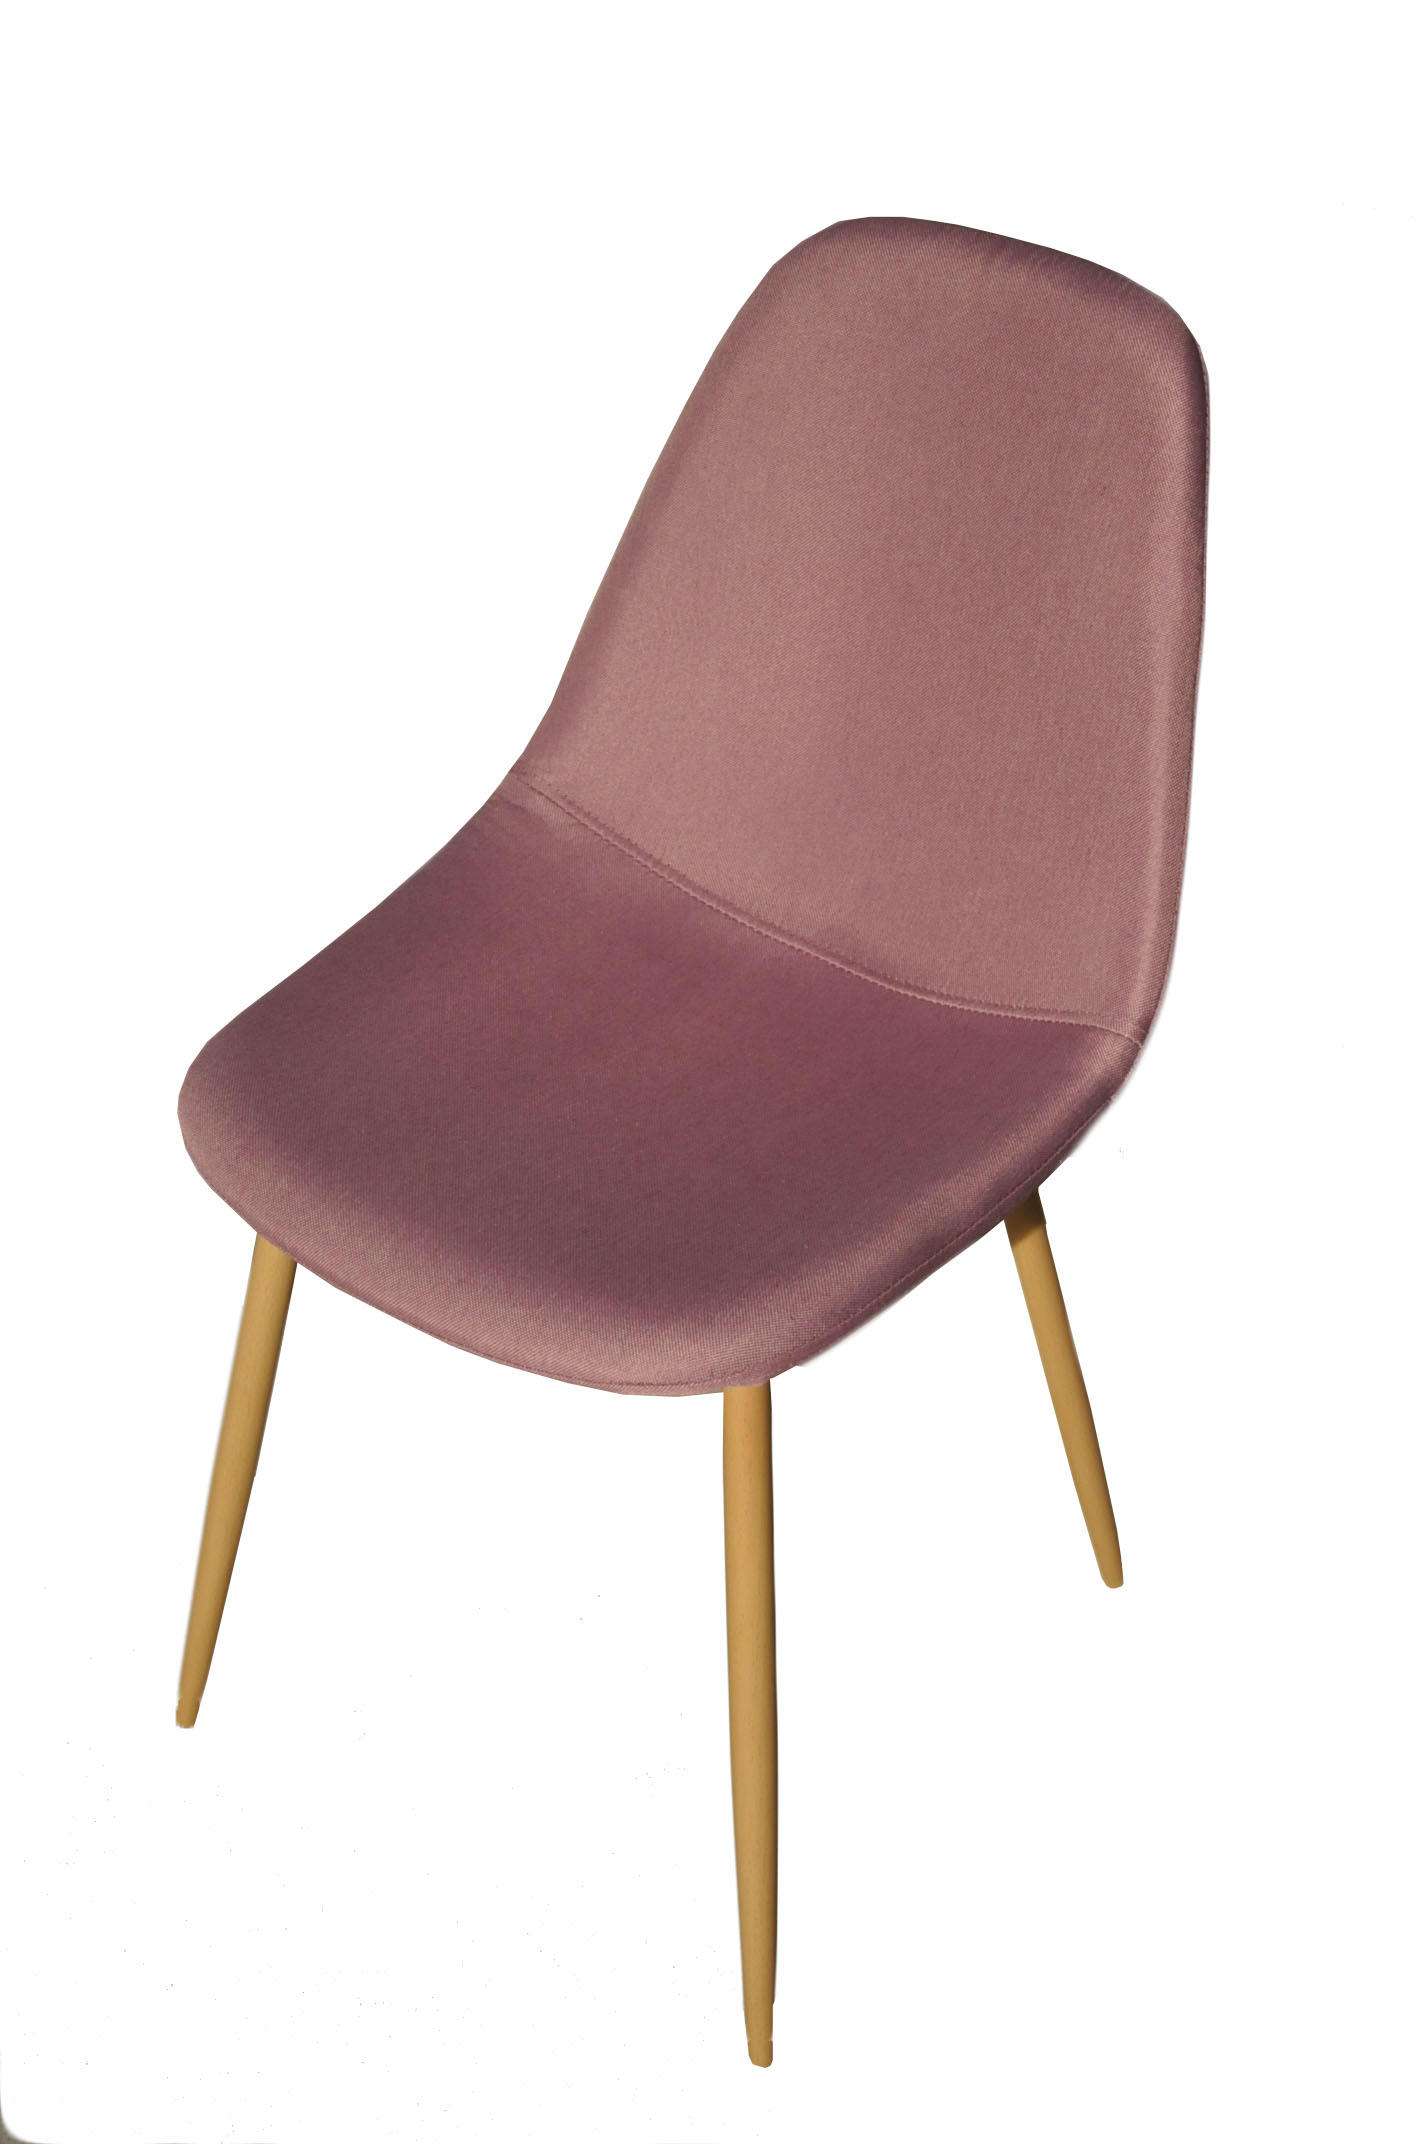 emejing chaise de jardin rose contemporary design trends